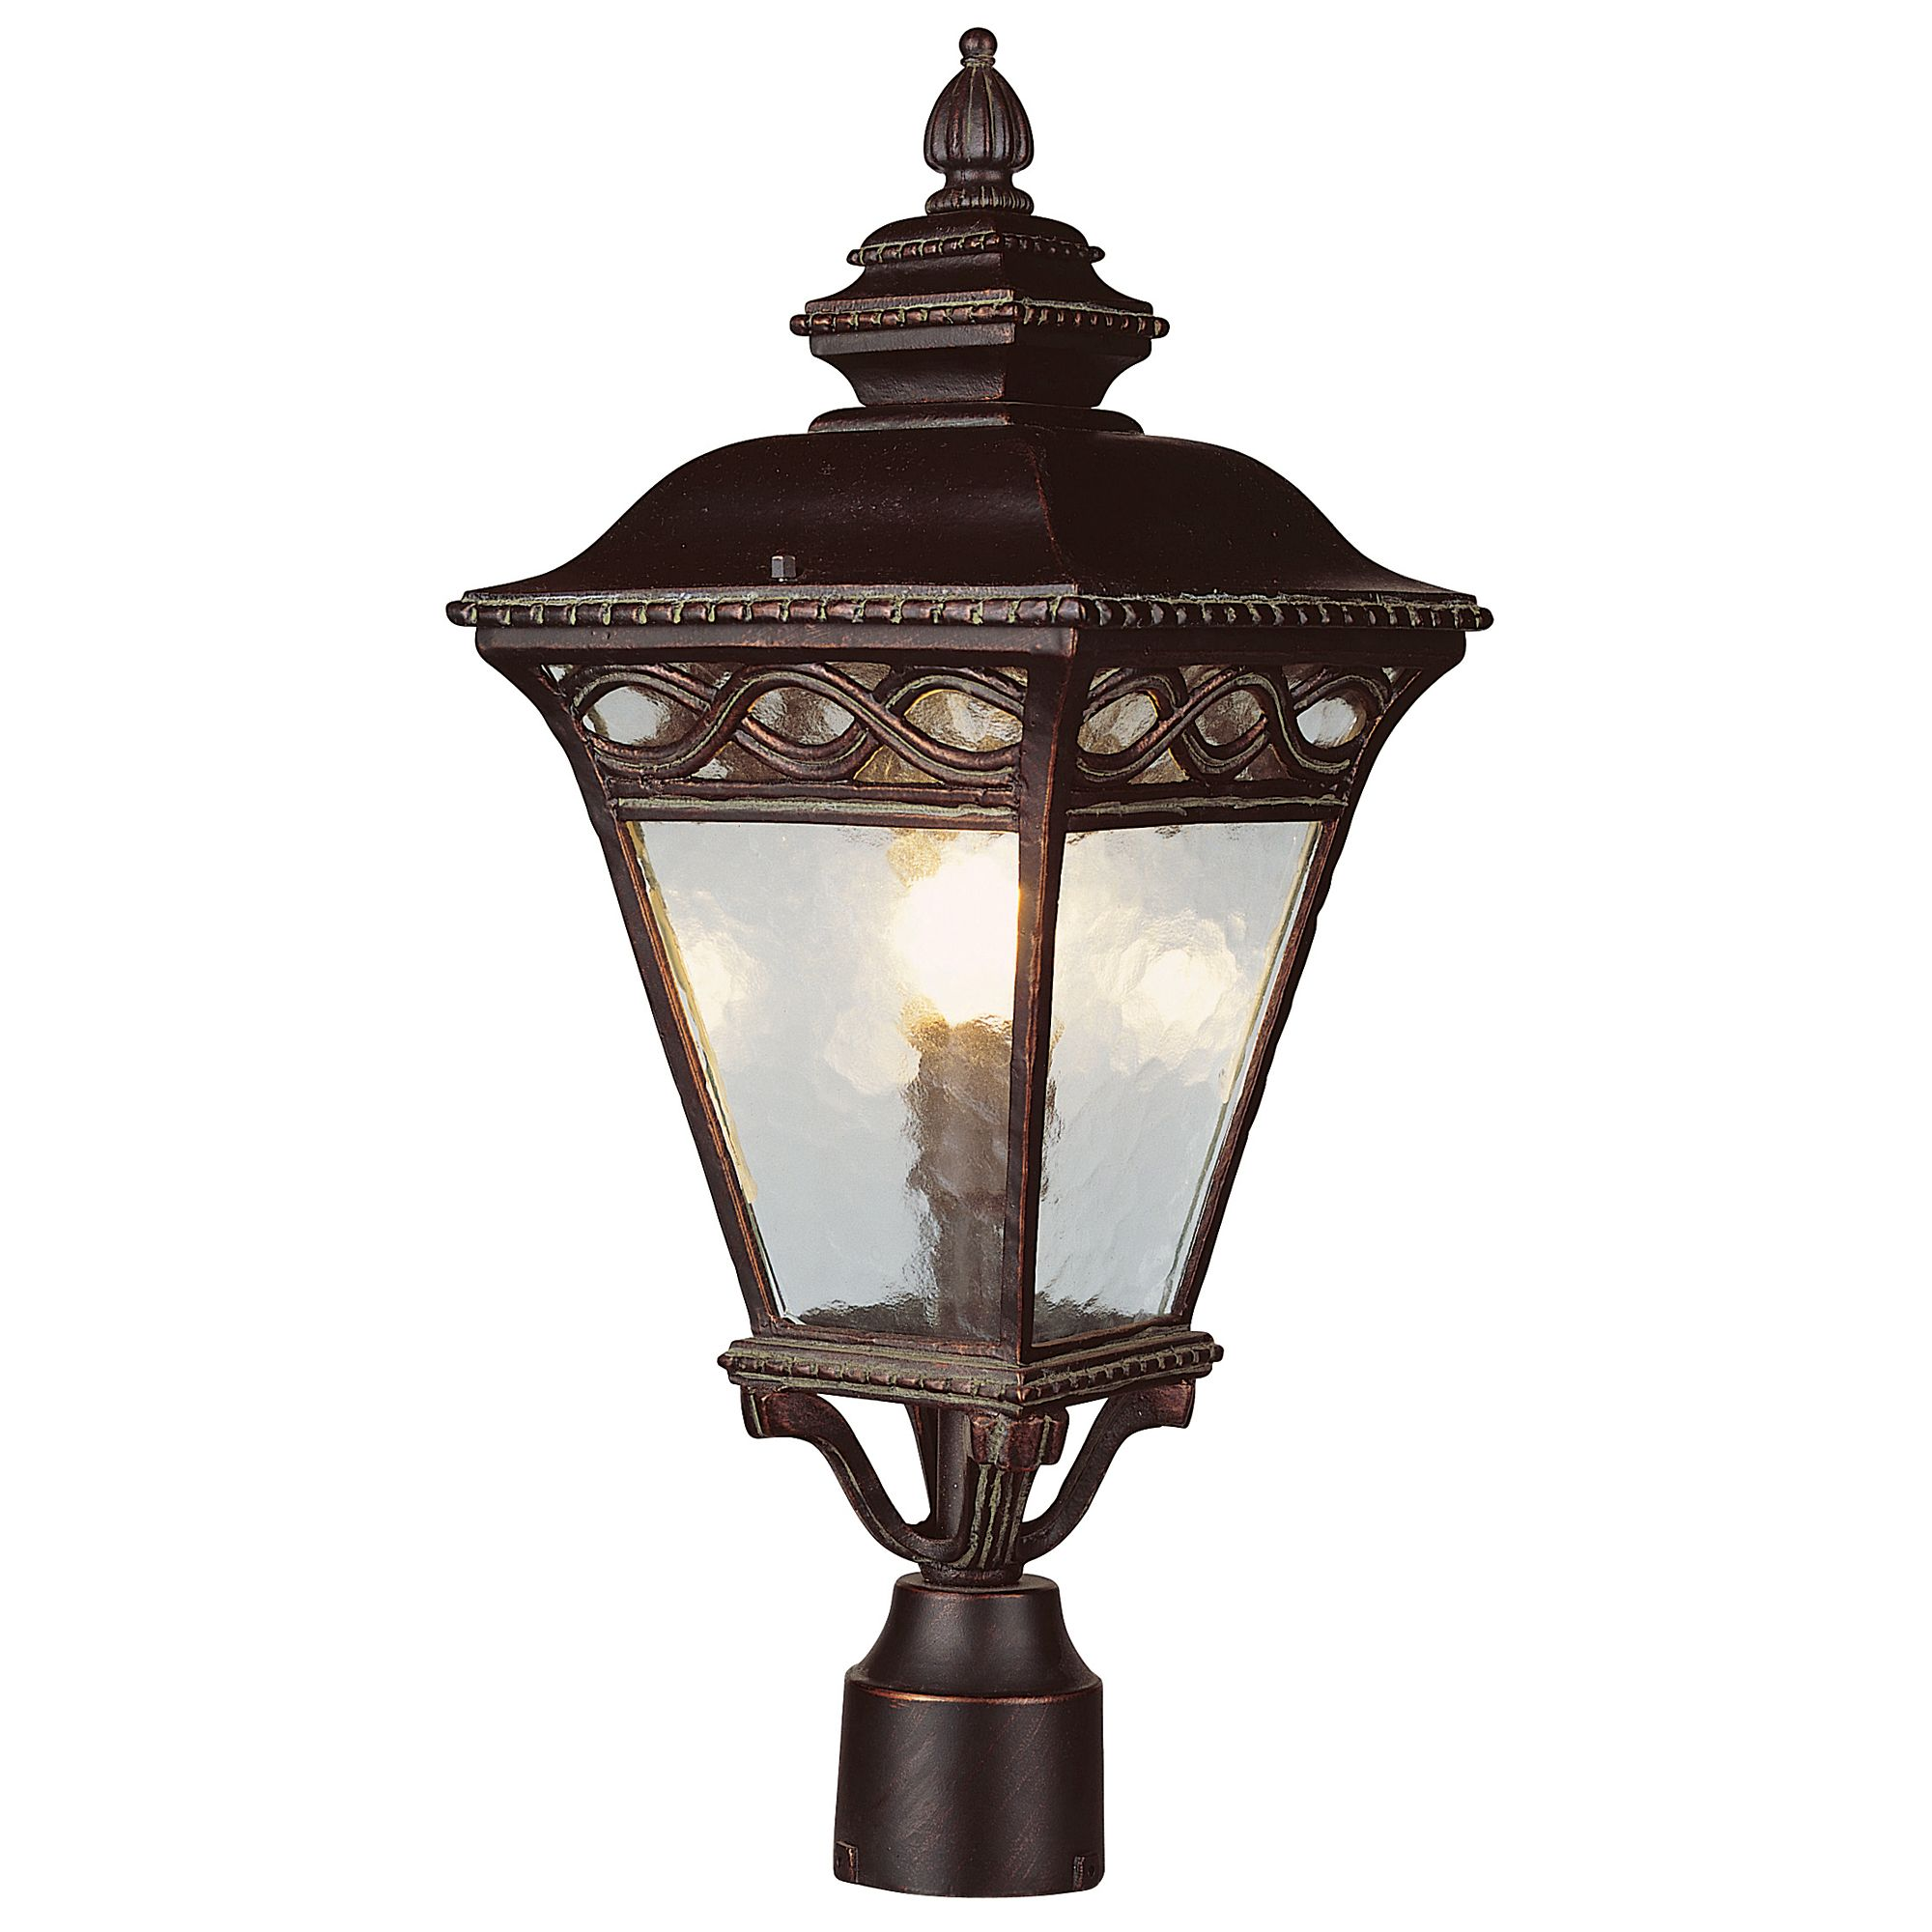 Trans Globe 50514 Brb Braided Burnished Bronze Outdoor Post Light On Sale Now Guaranteed Low Prices Call Trans Globe Lighting Outdoor Post Lights Post Lights